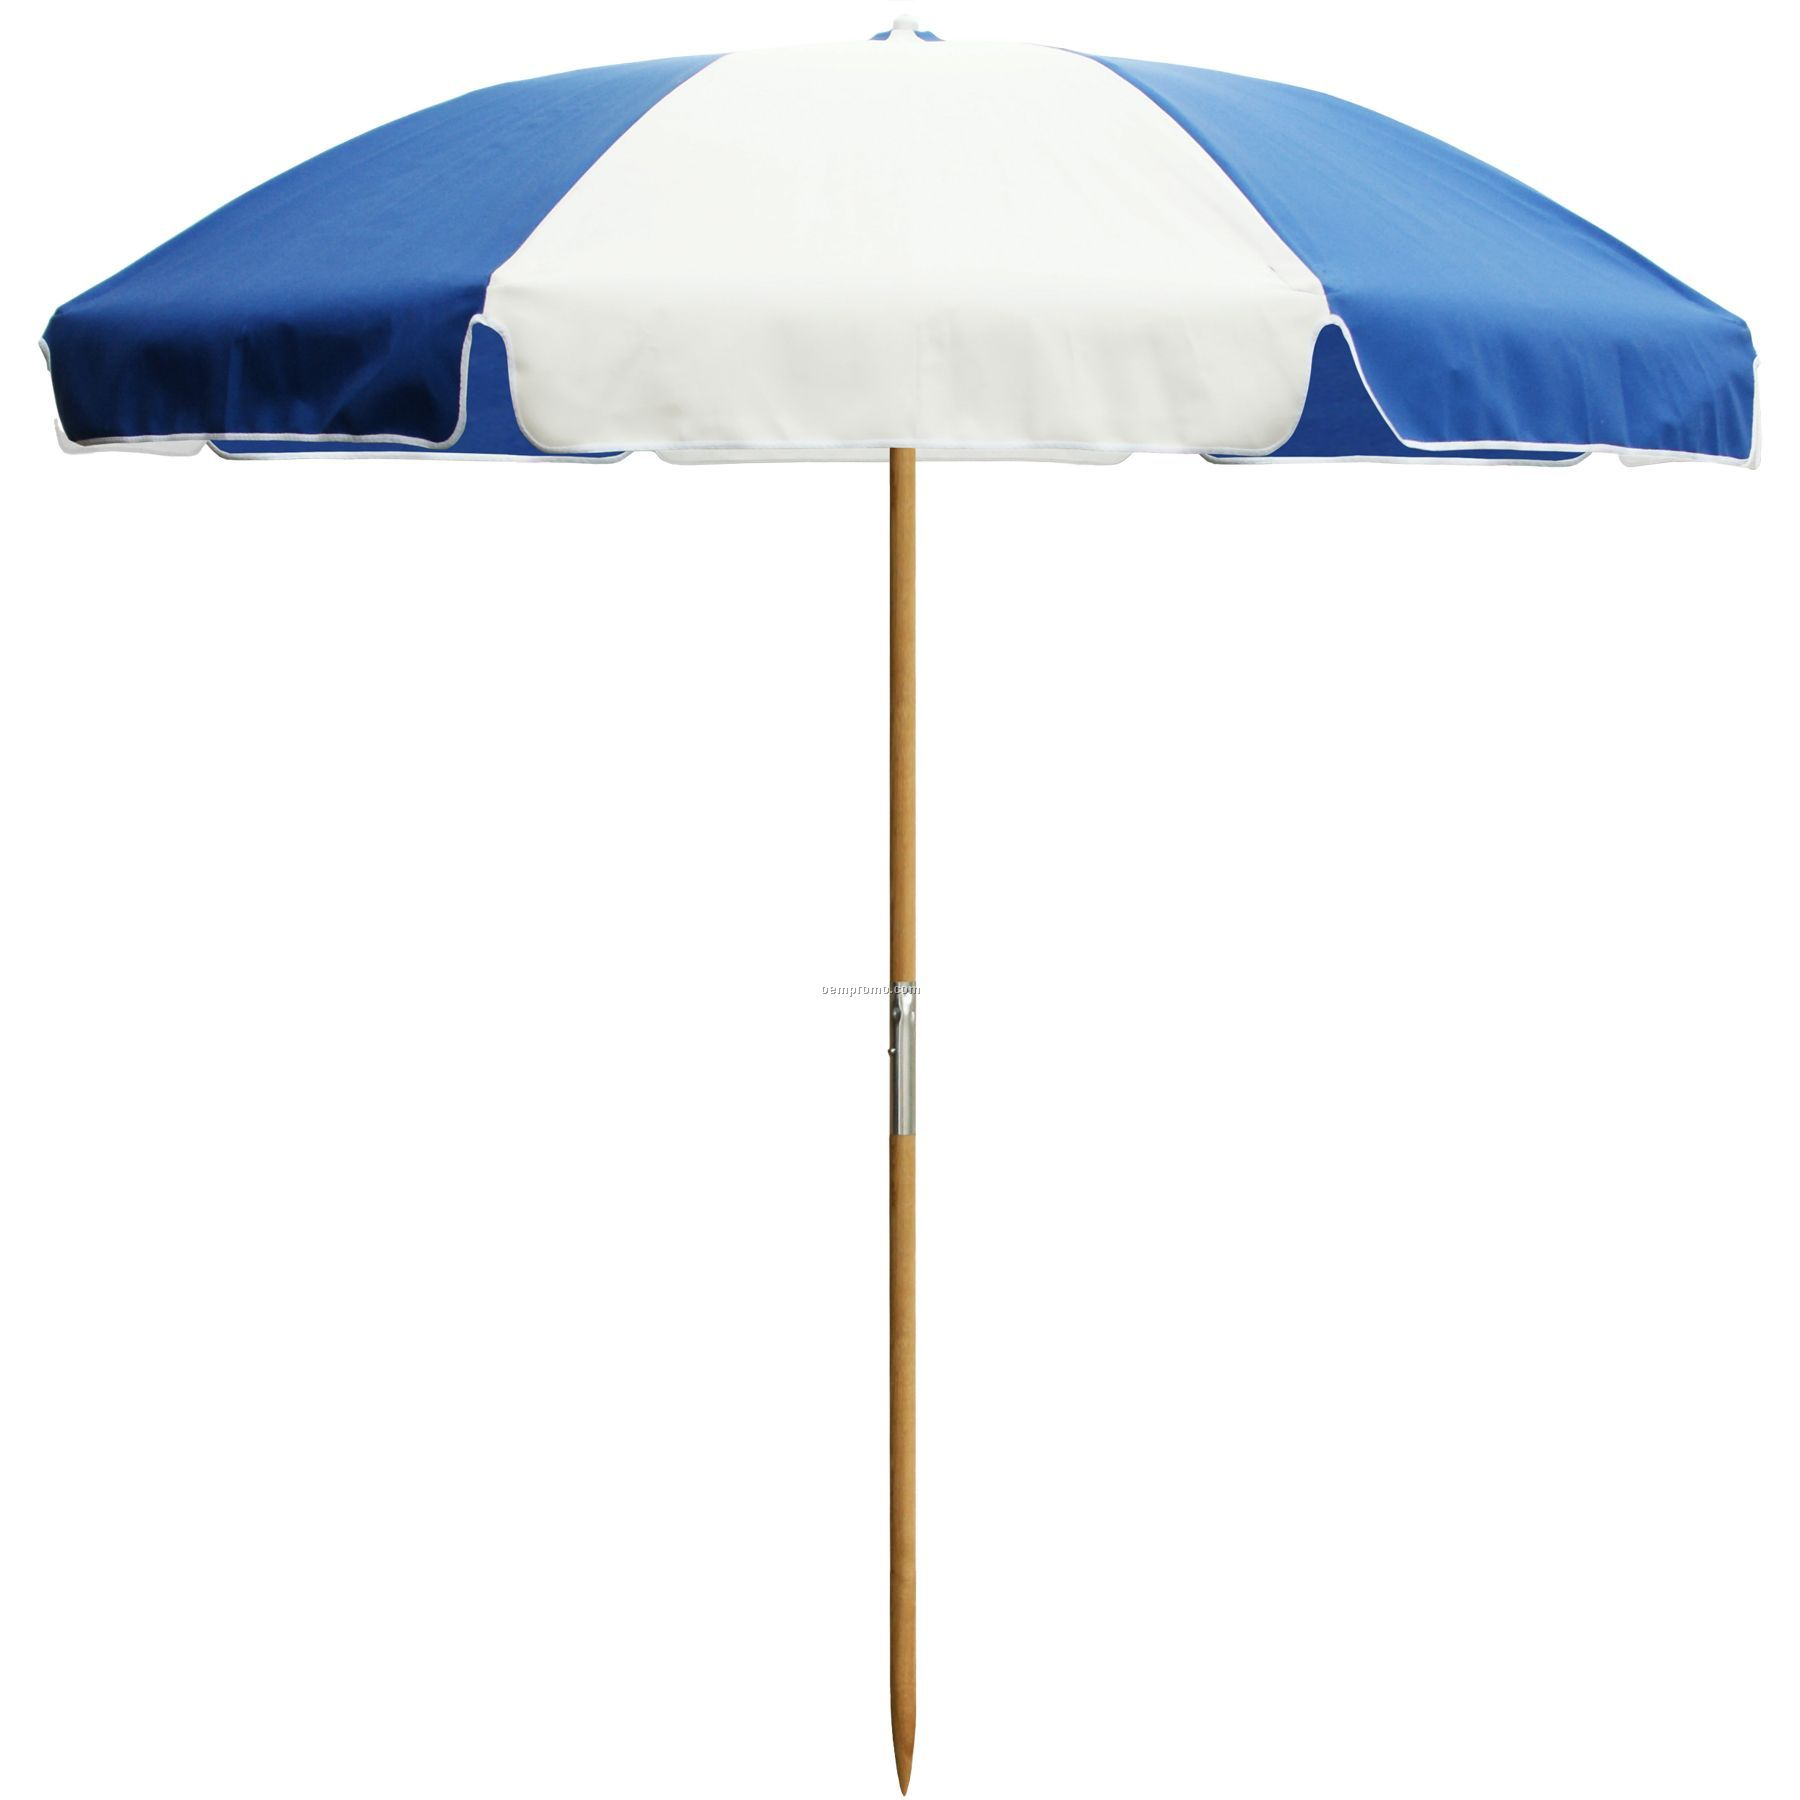 Beach umbrella and chair png - Us Made Deluxe Beach Umbrella 7 1 2 Foot Diameter China Wholesale Us